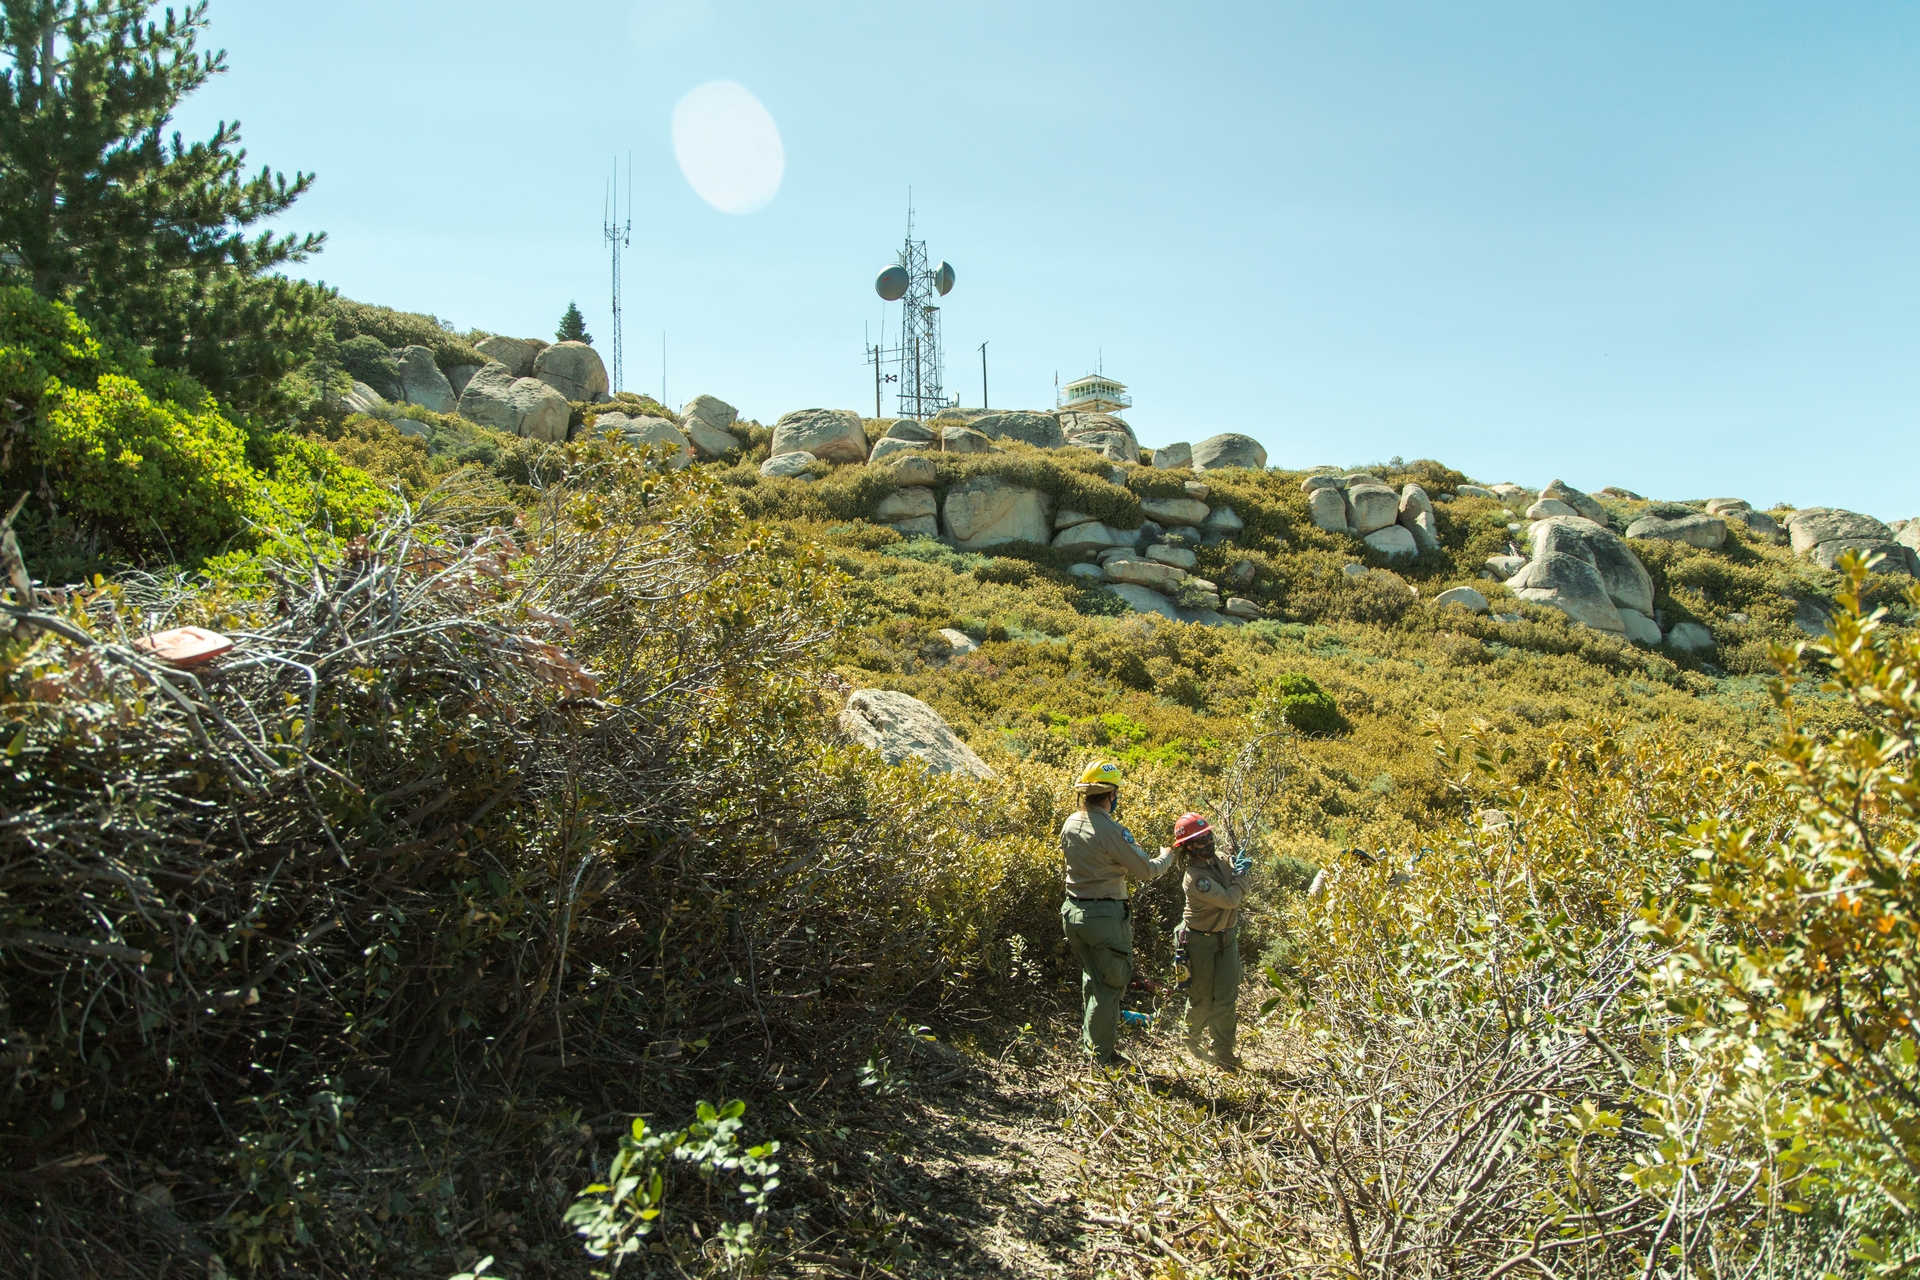 For the past few months, Corpsmembers have worked to clear hazardous brush and trees near the Keller Peak Fire Lookout in Big Bear.